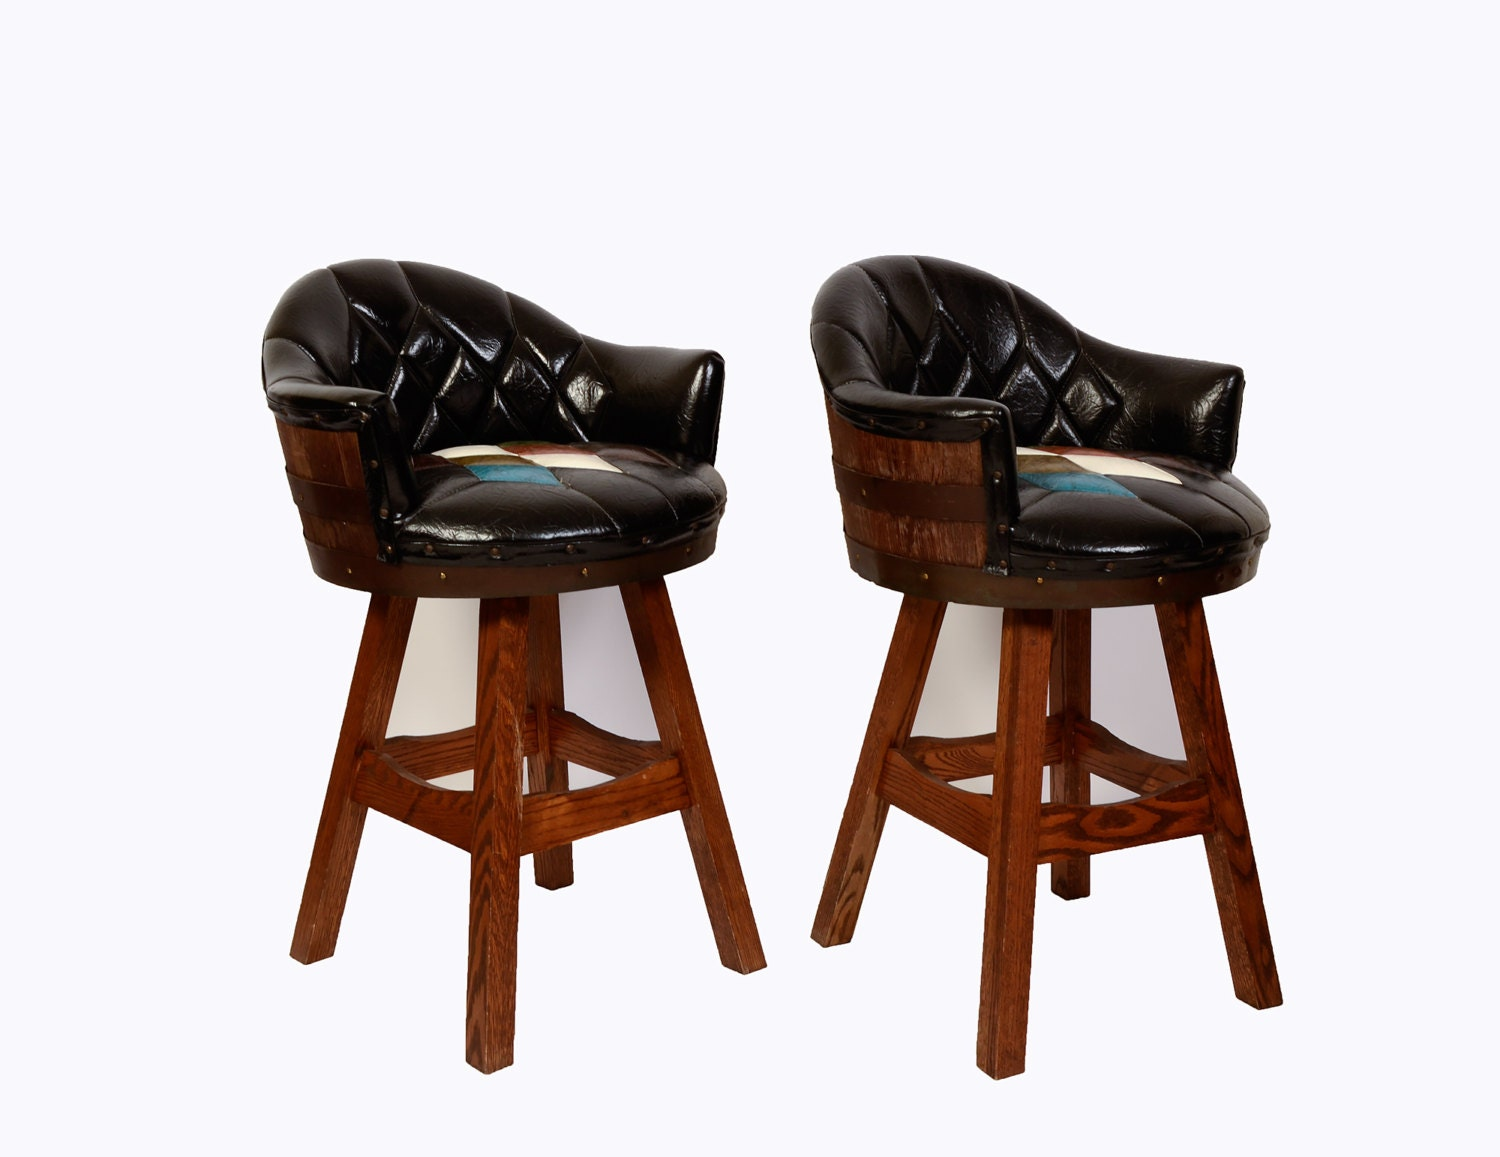 Whiskey Barrel Bar Stools Pair Mid Century Man by  : ilfullxfull573632467jb7u from www.etsy.com size 1500 x 1157 jpeg 149kB